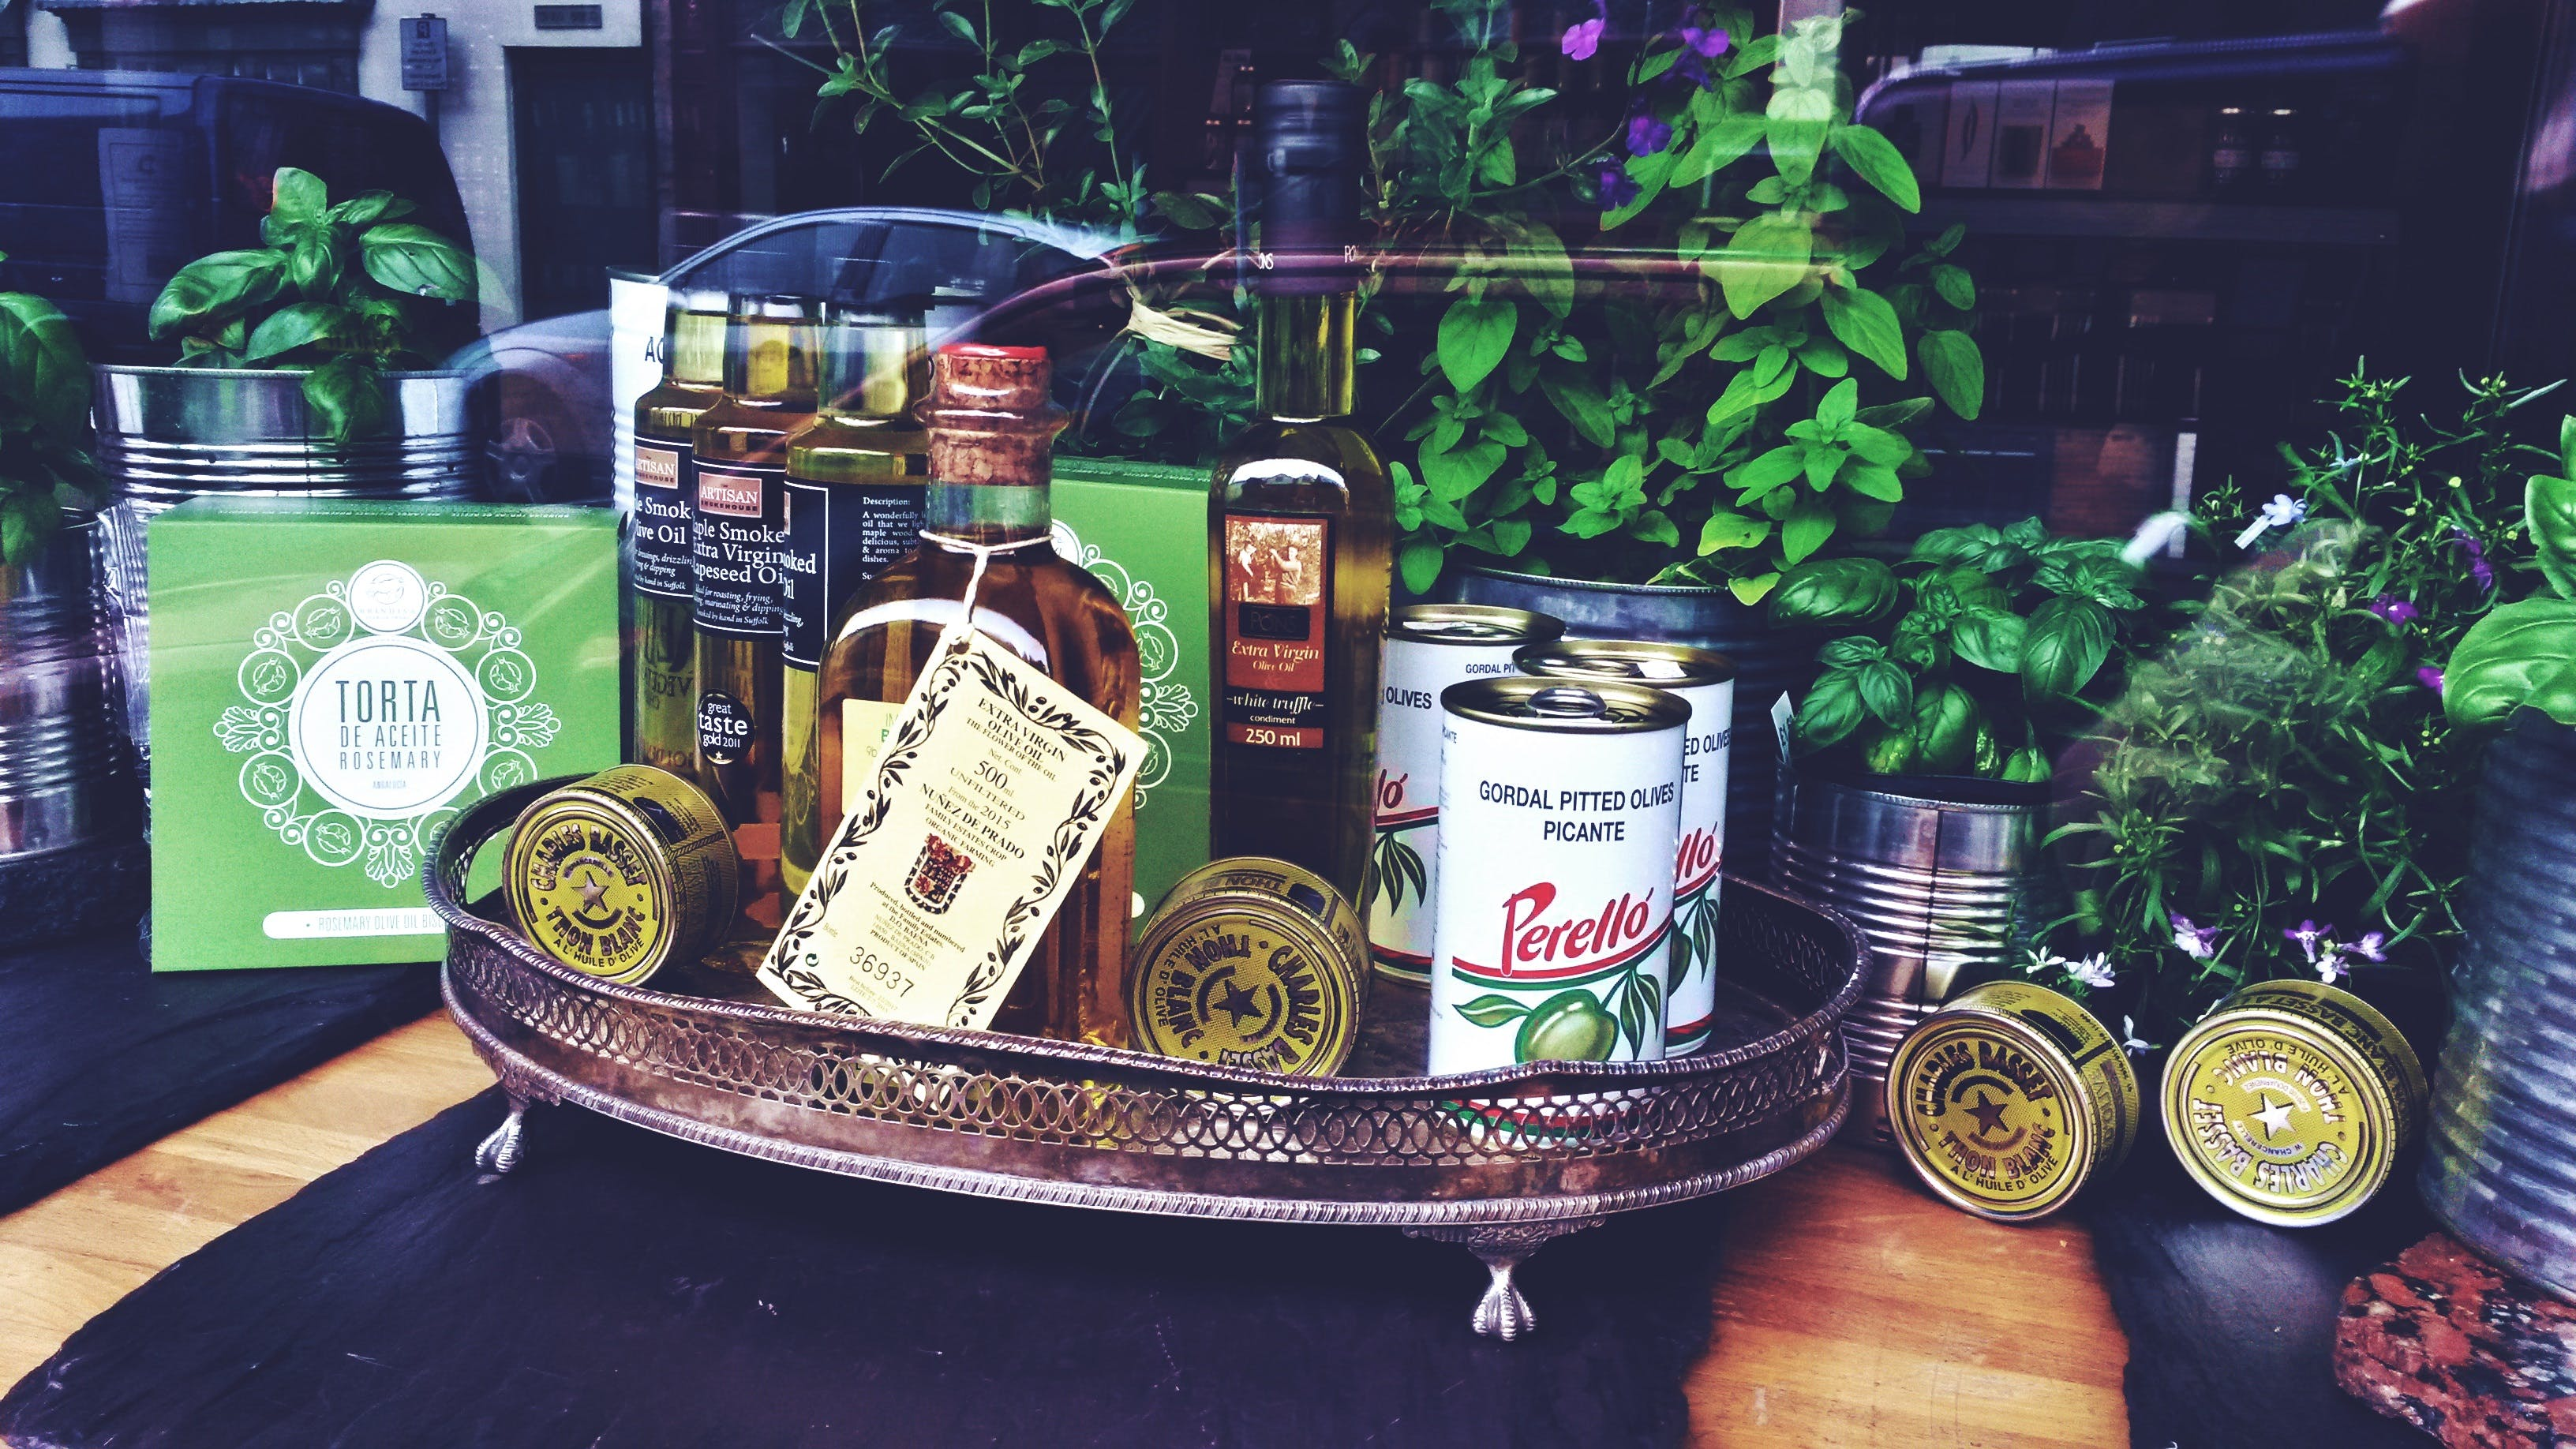 Photo of Bottles and Can on Tray Near Plants